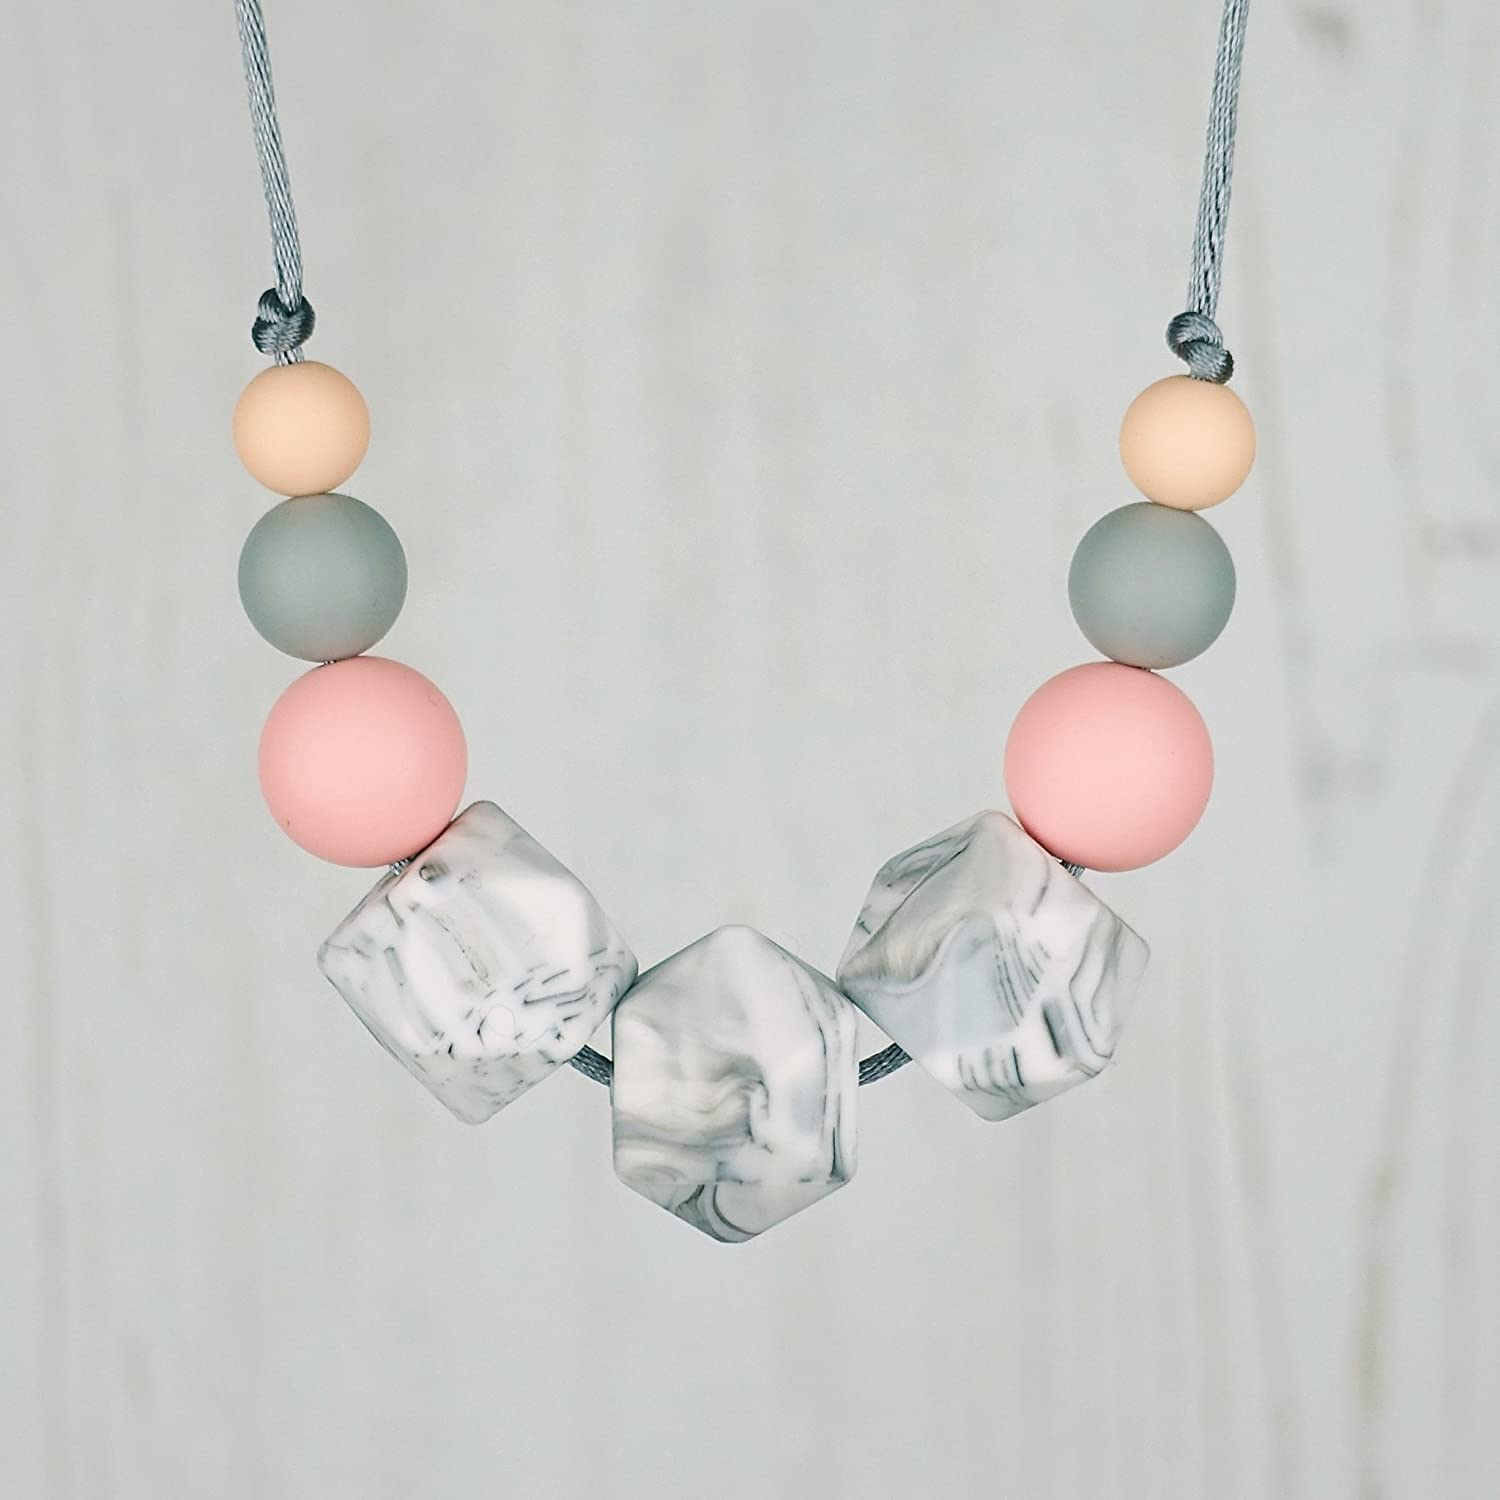 Silicone Teething Necklace for Mum, Nursing Jewellery - ROSE MARBLE: FLORA